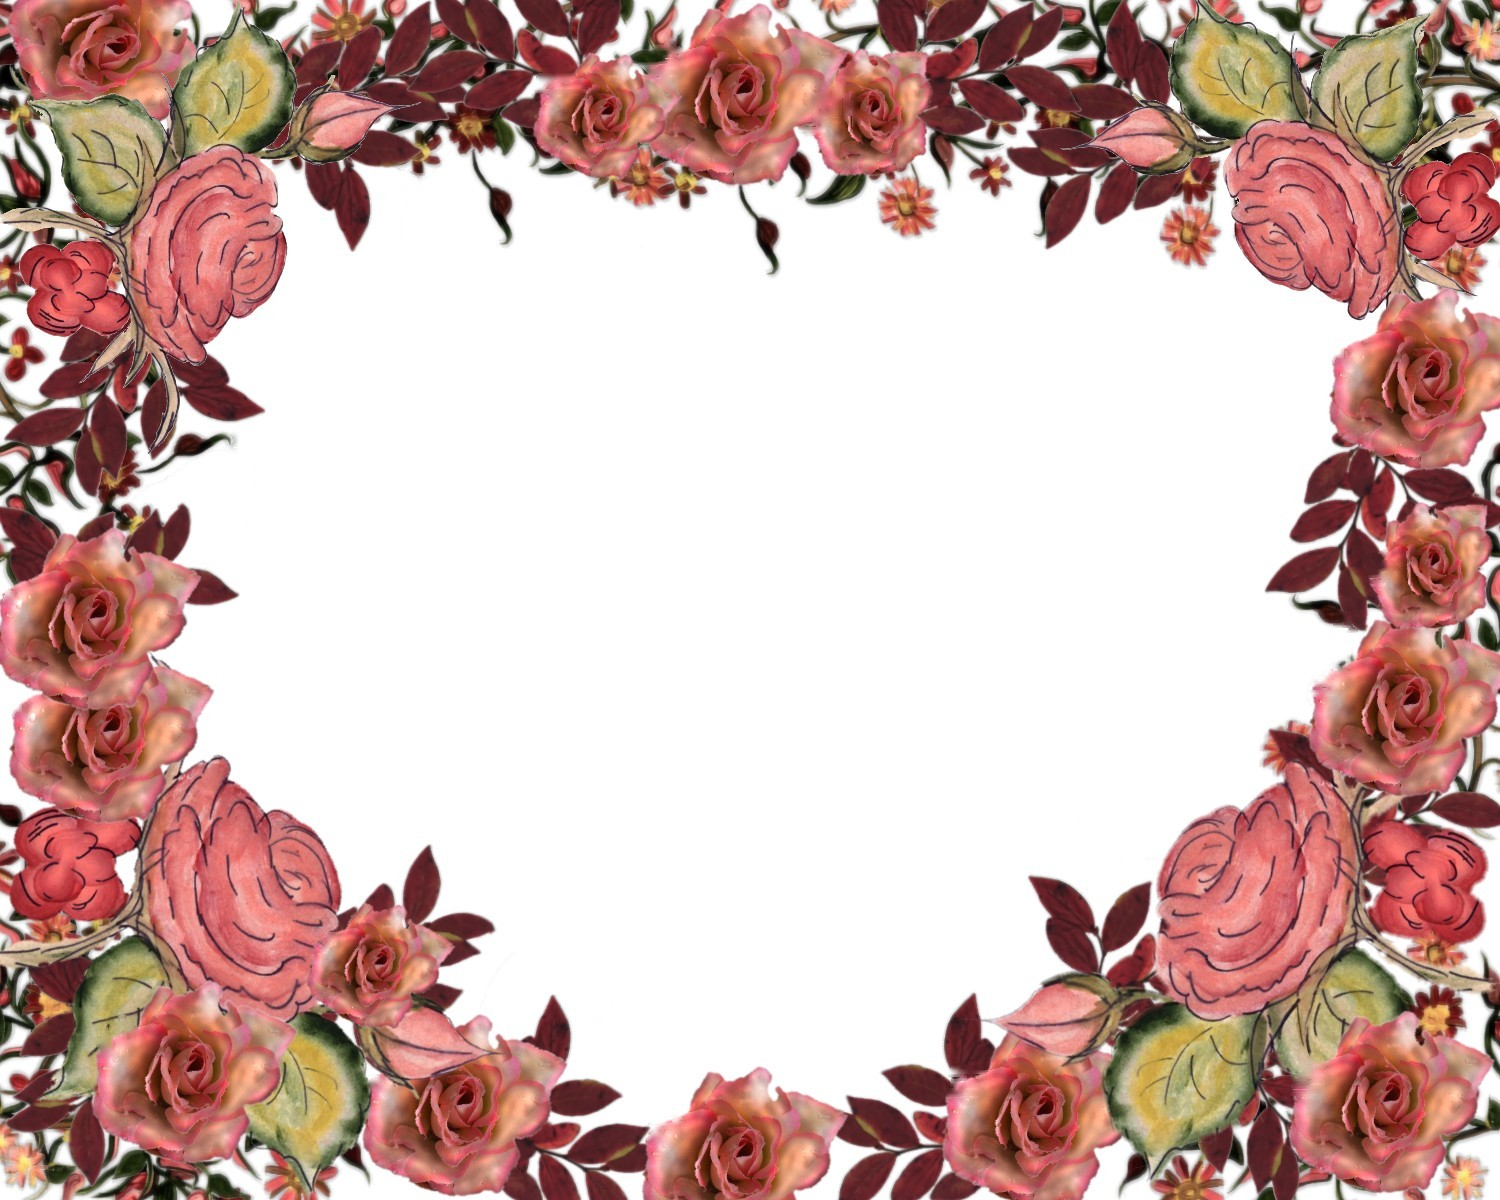 Floral borders images jpg freeuse download 17 Best images about Clipart on Pinterest | Borders and frames ... jpg freeuse download